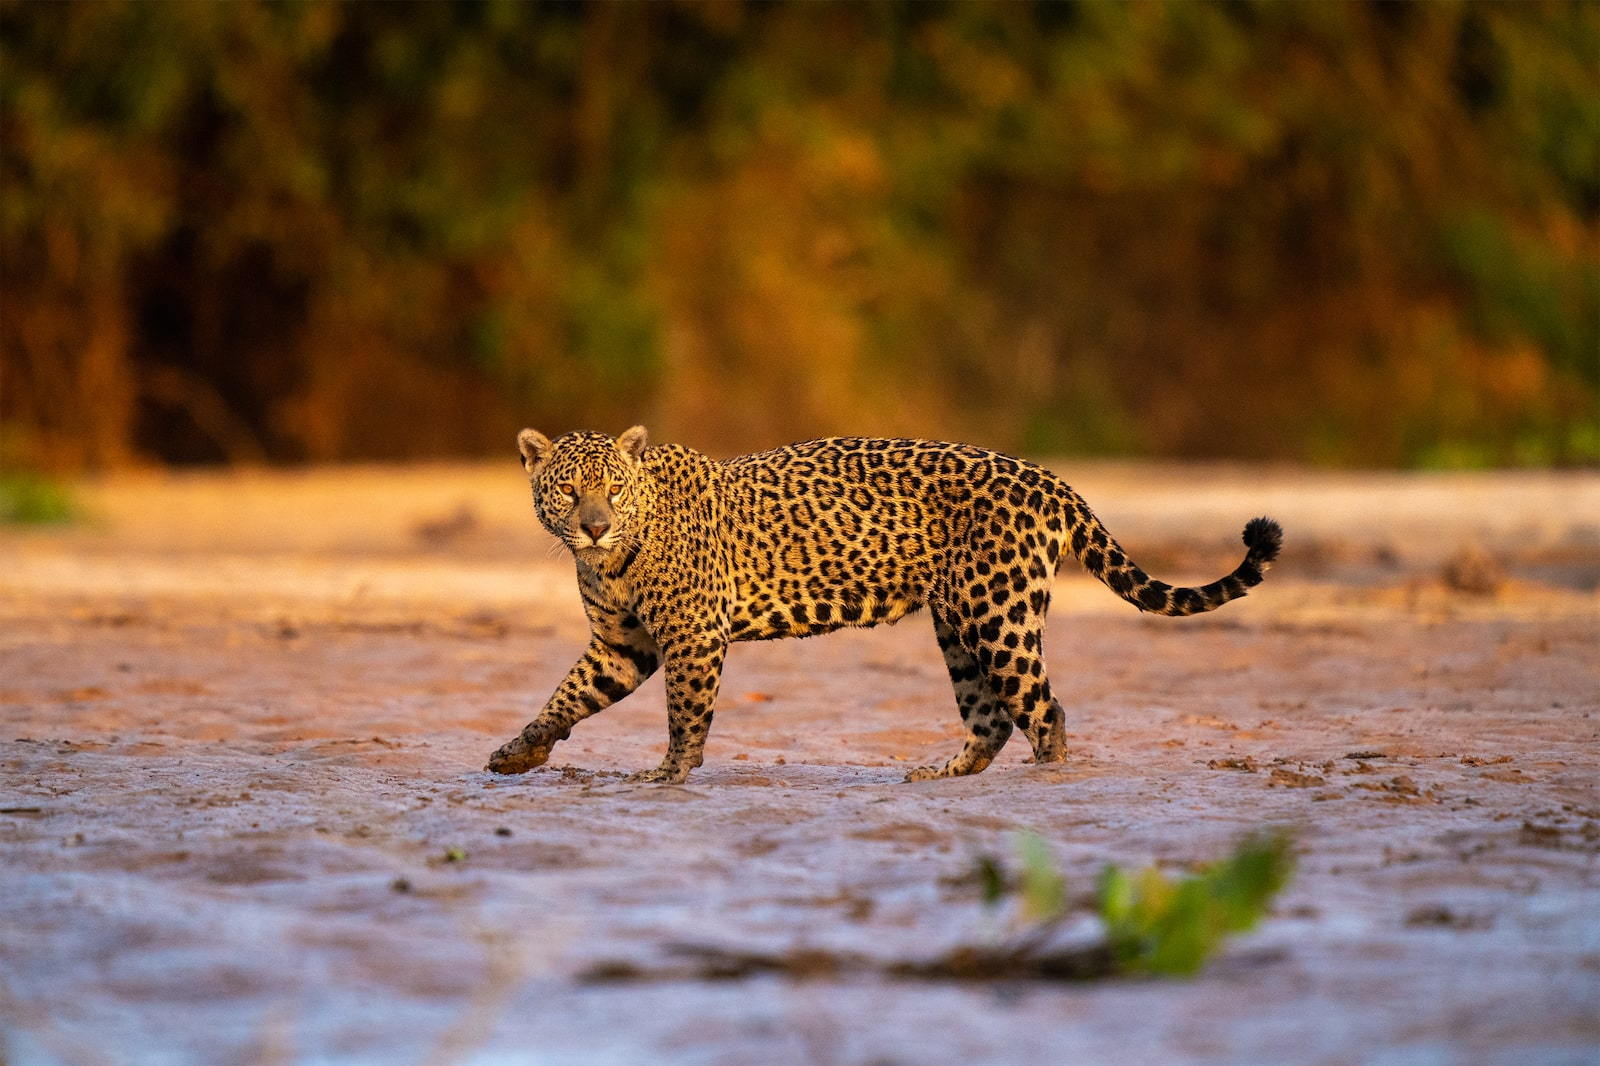 Jaguar in the Open